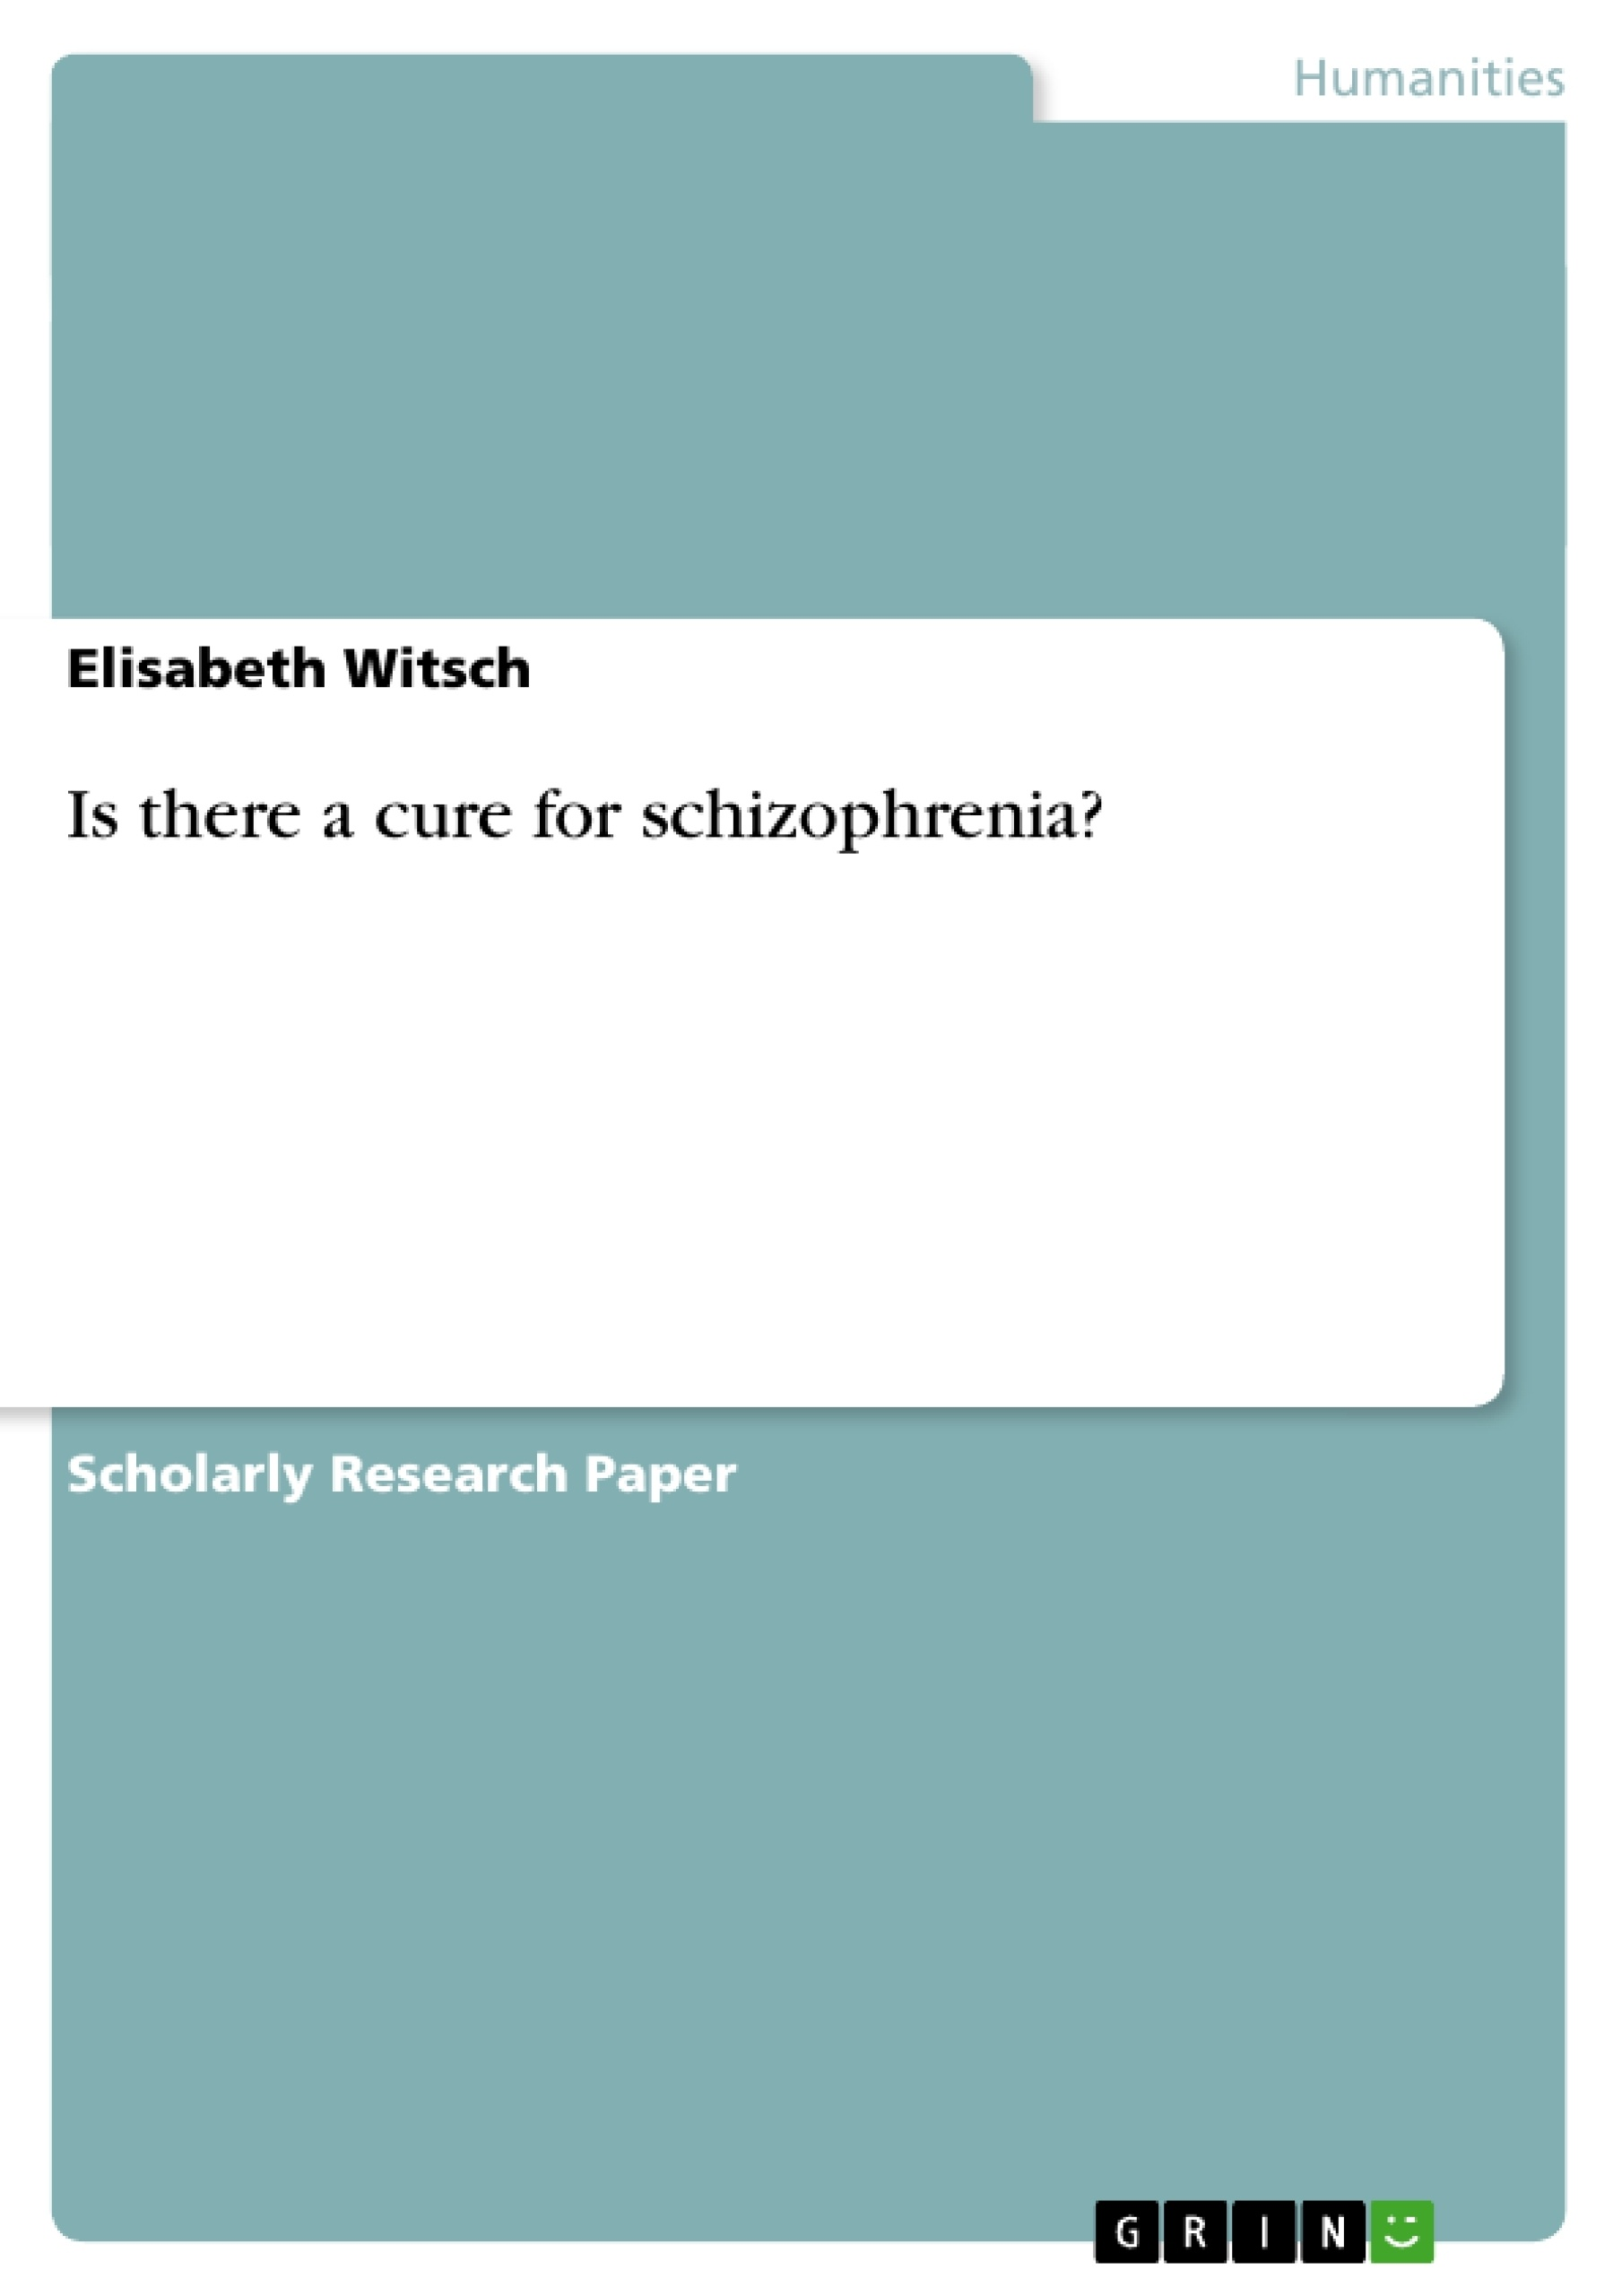 schizophrenia essay titles  term paper on schizophrenia term paper help sample term